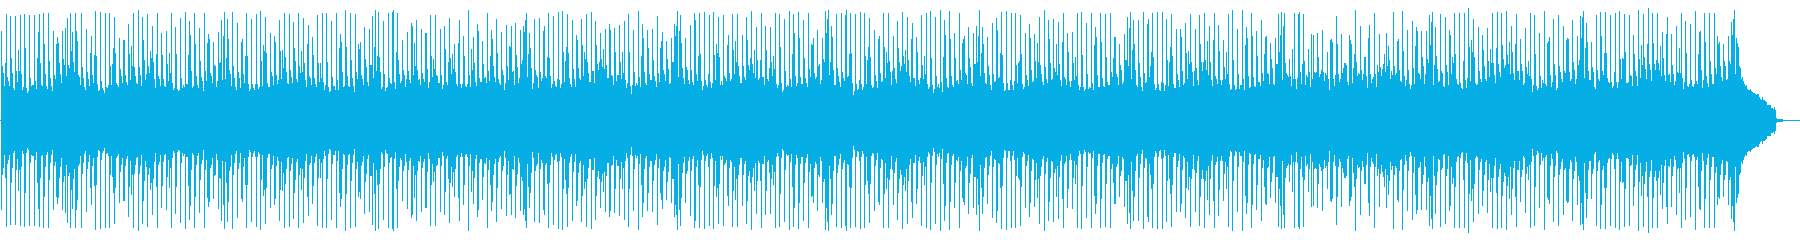 [Without melody] Agriculture, fields, and heartwarming BGM's reproduced waveform